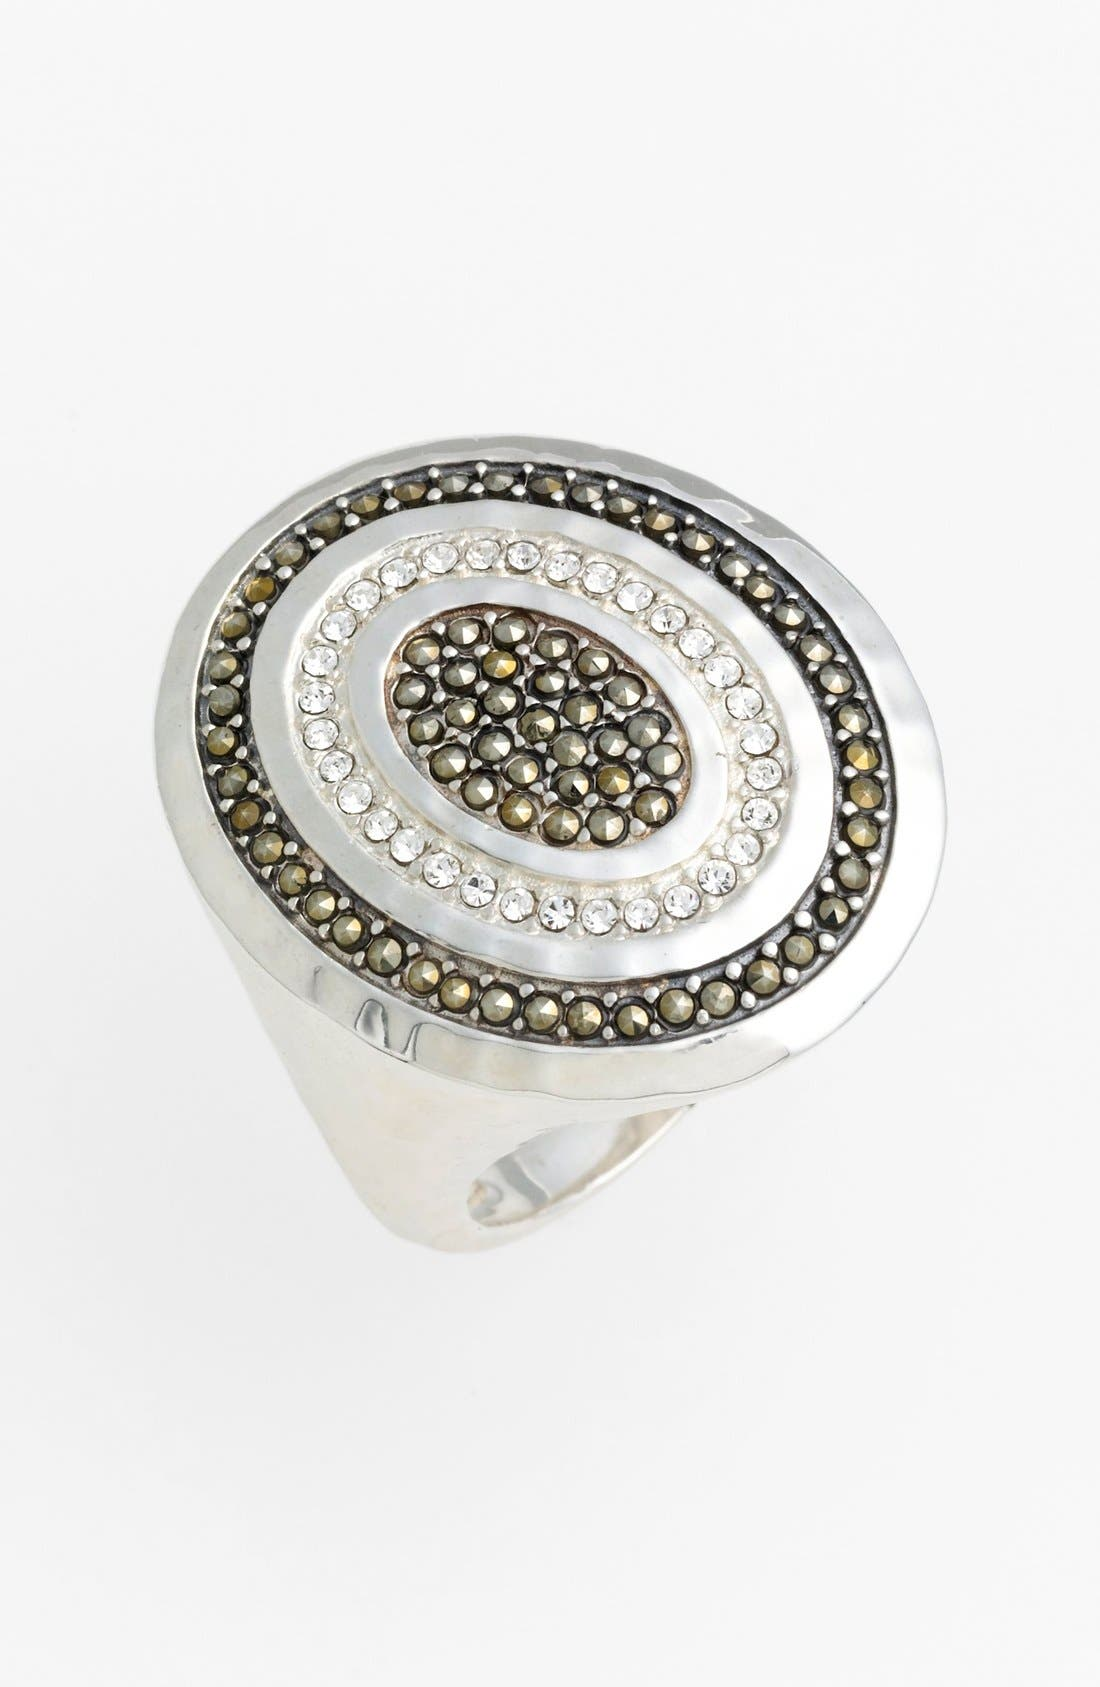 Main Image - Judith Jack 'Halo' Oval Cocktail Ring